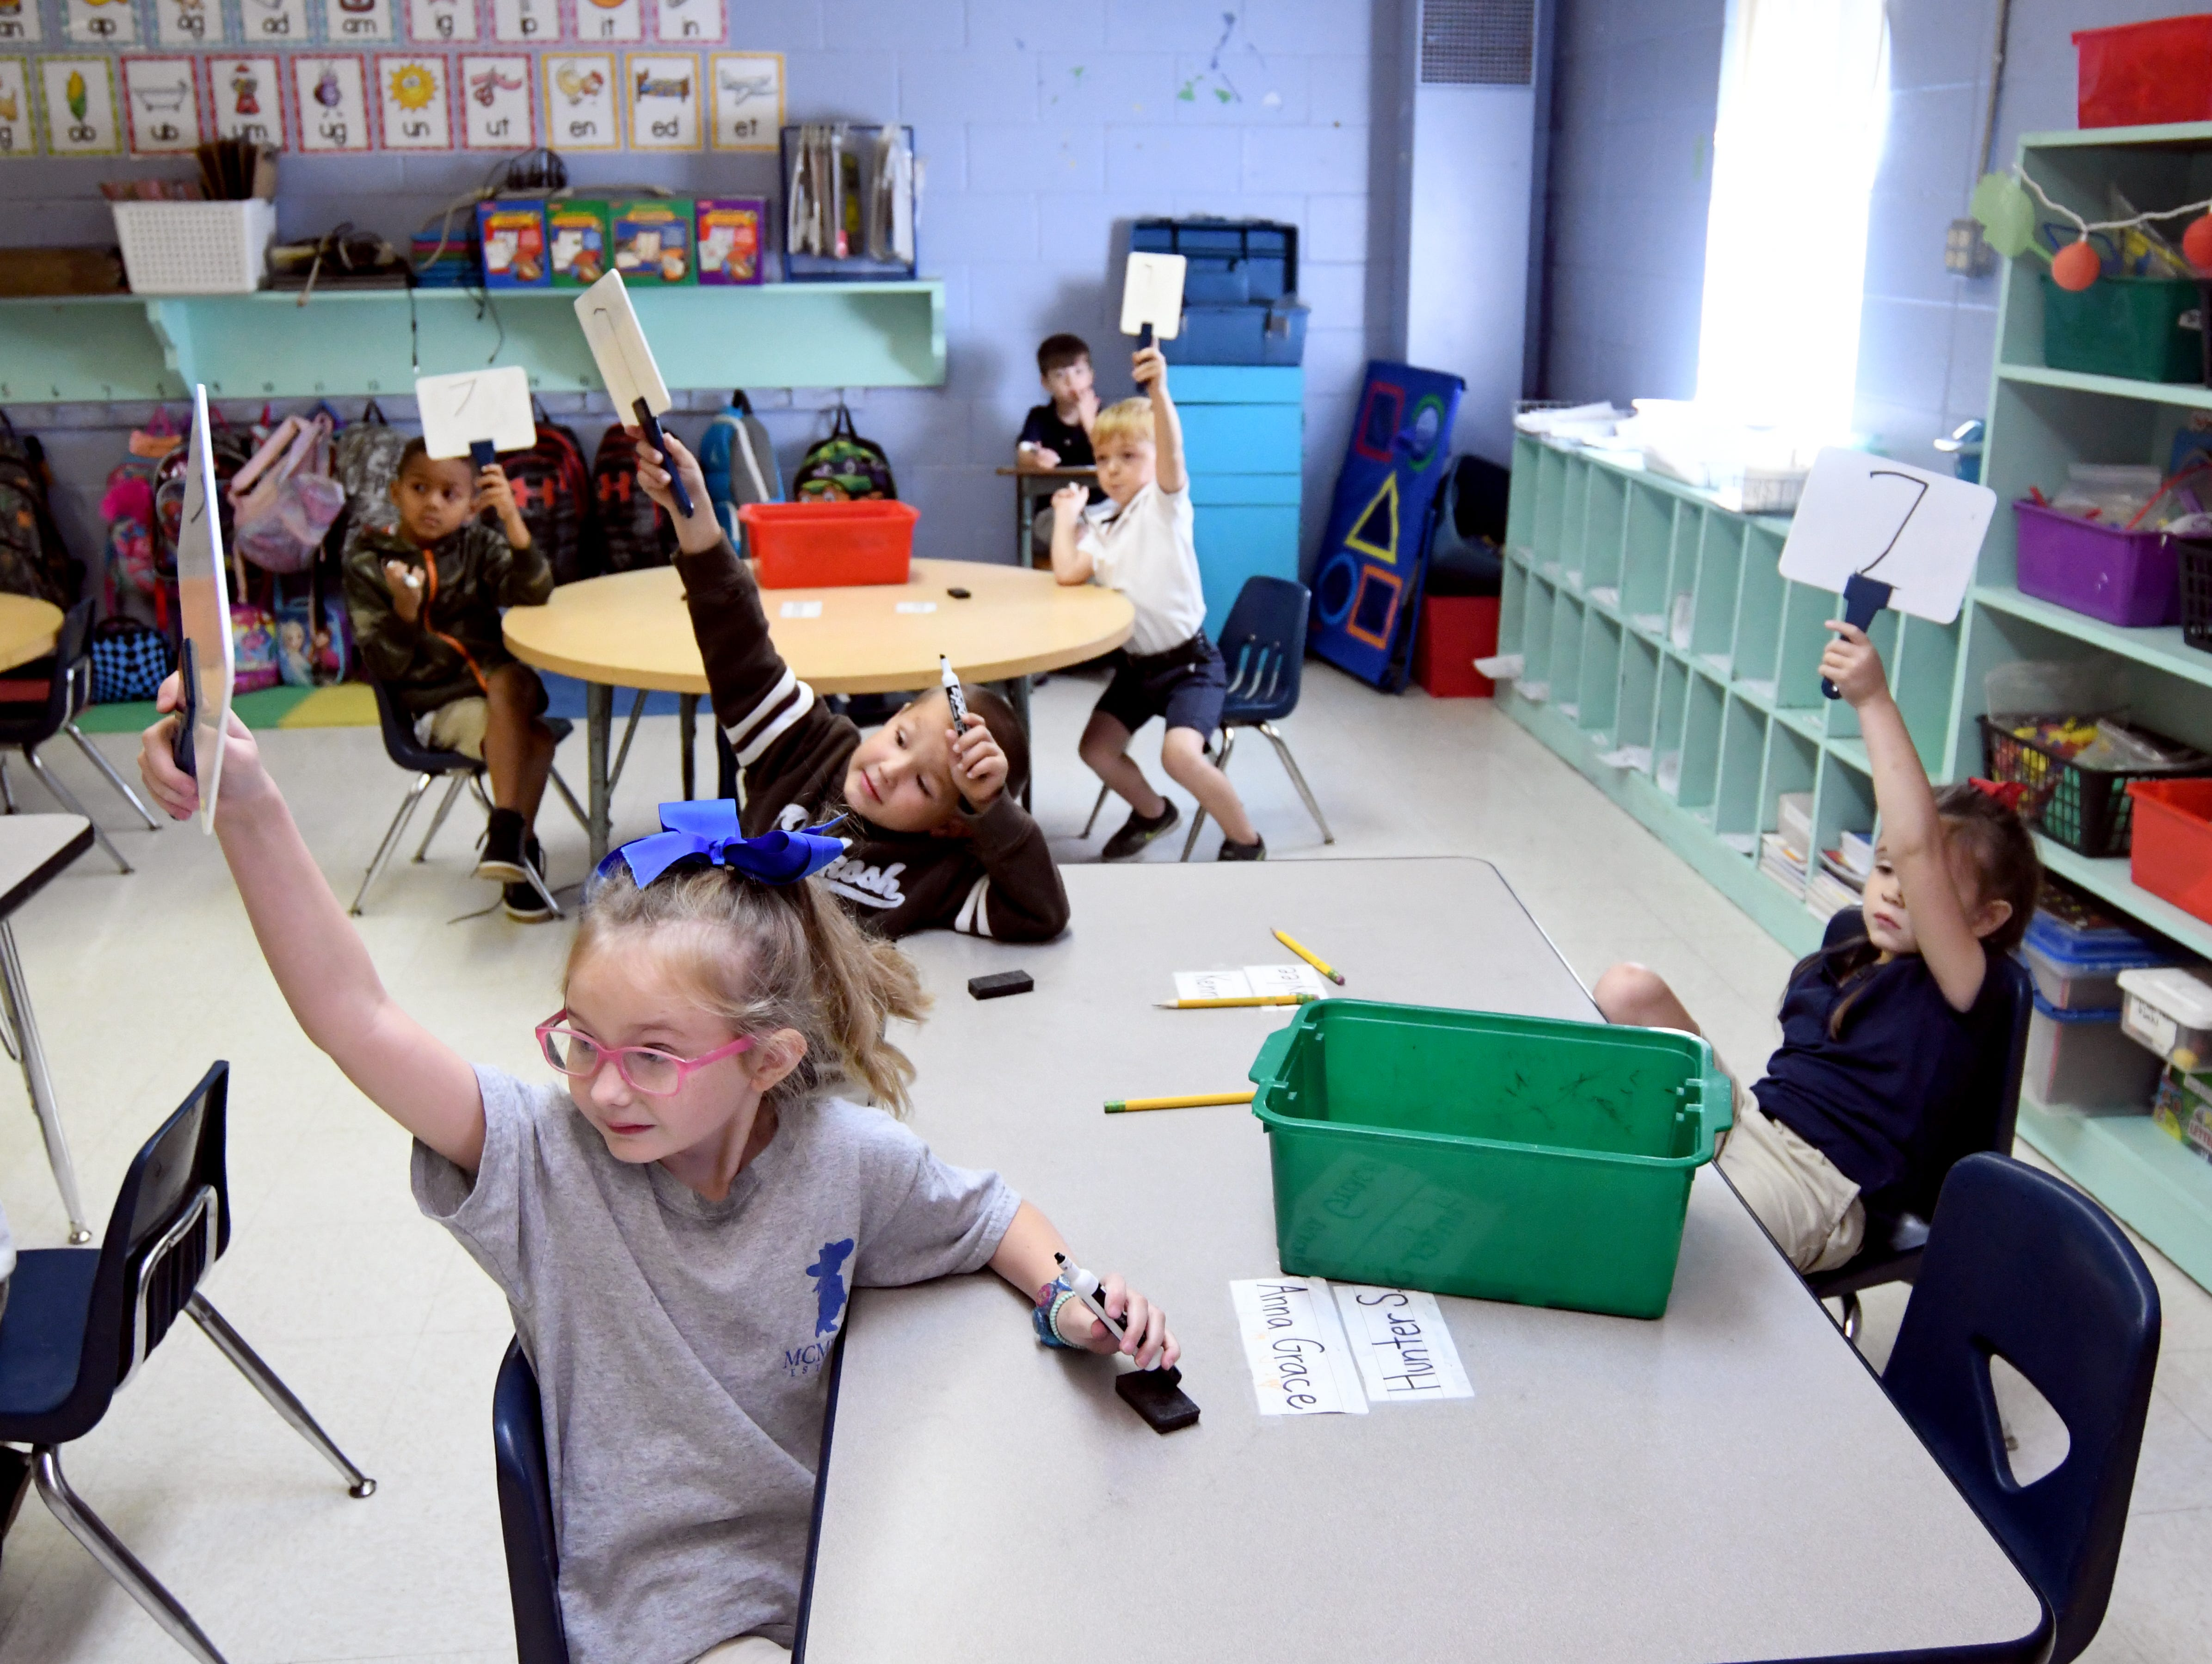 Kindergartners learn numbers and letters at South Forrest Attendance Center on Thursday, August 30, 2018. Kindergarten students and teachers are striving to be No. 1 in the state, after coming in second on the kindergarten readiness test this spring.